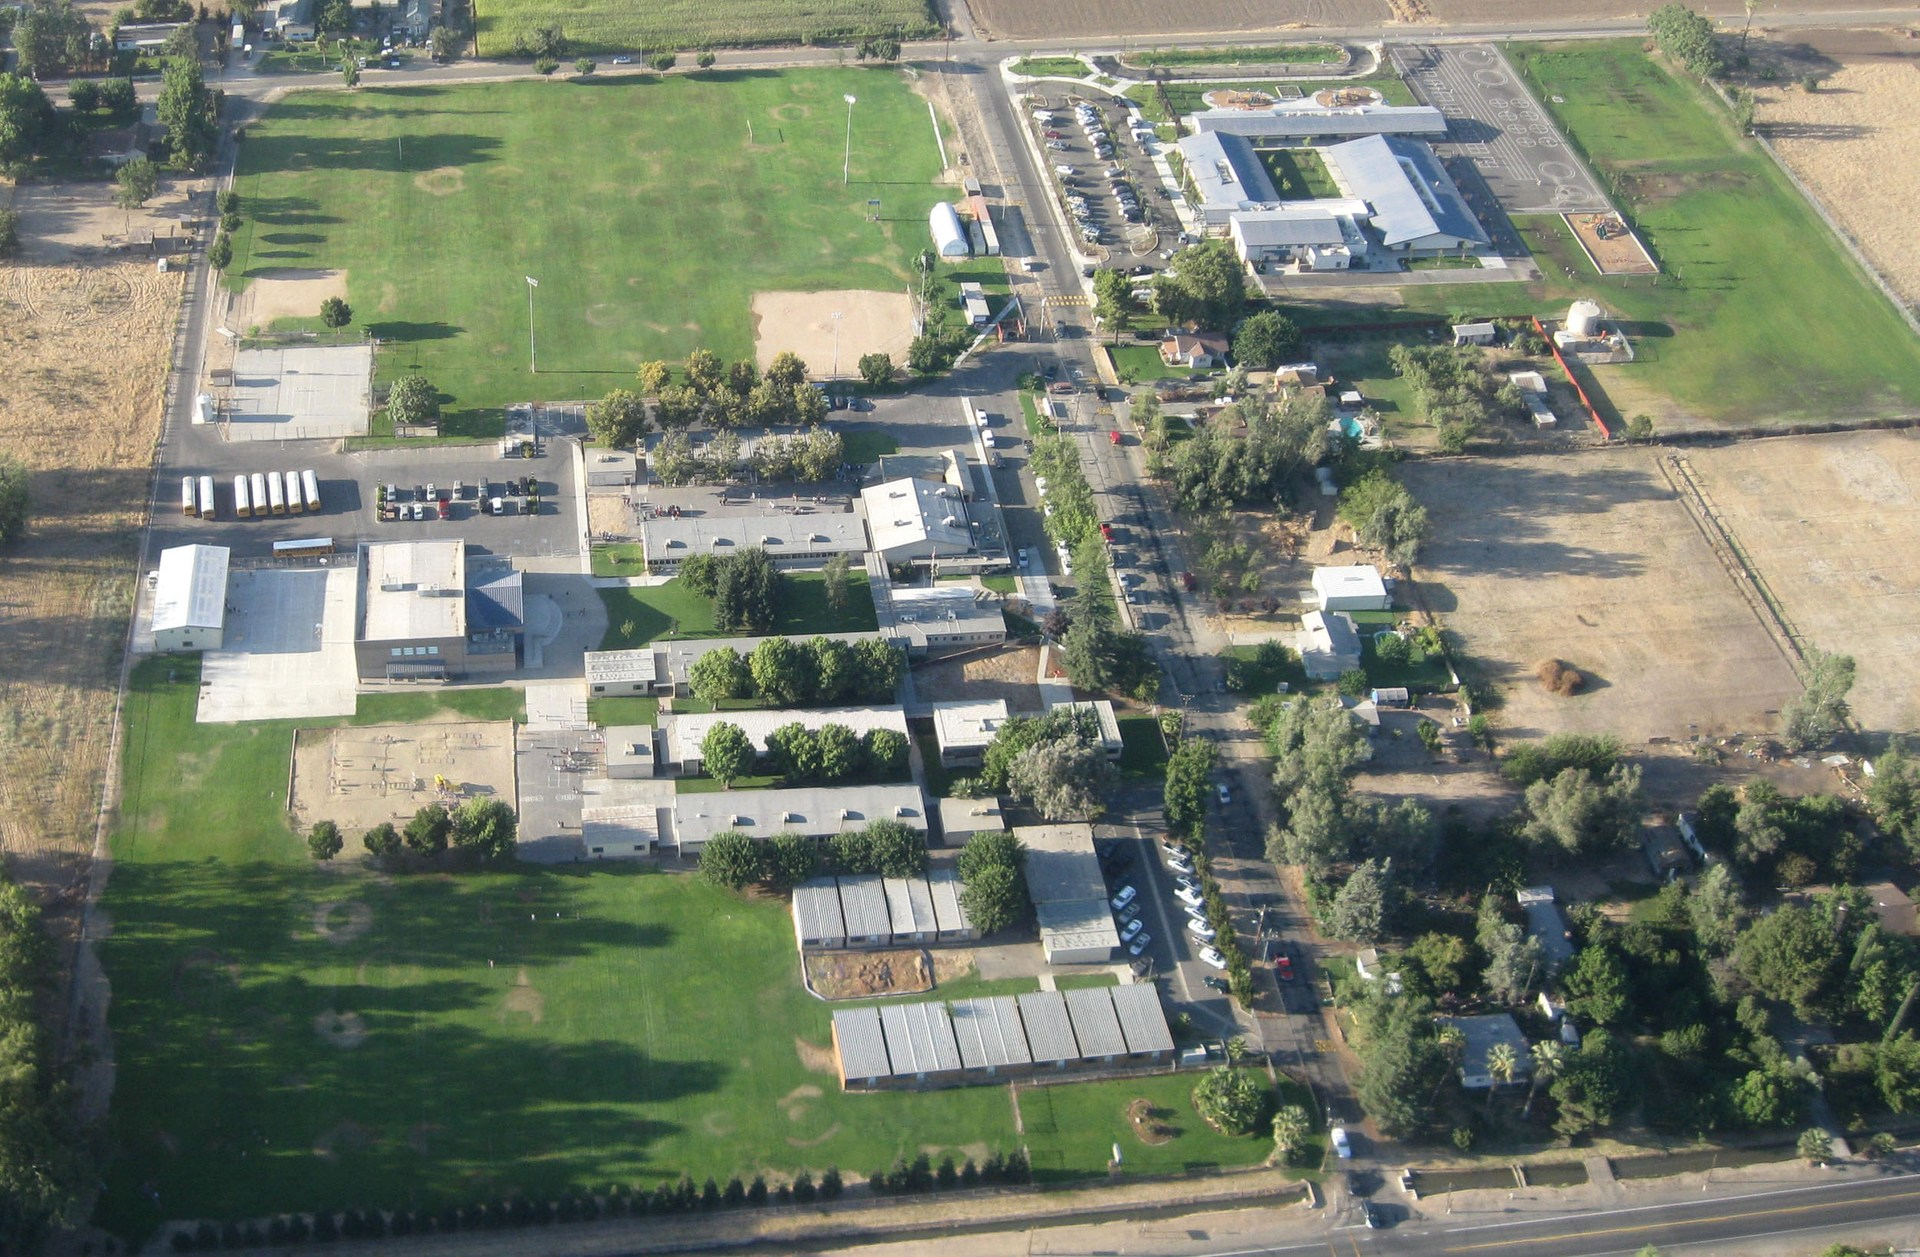 Aerial view of school